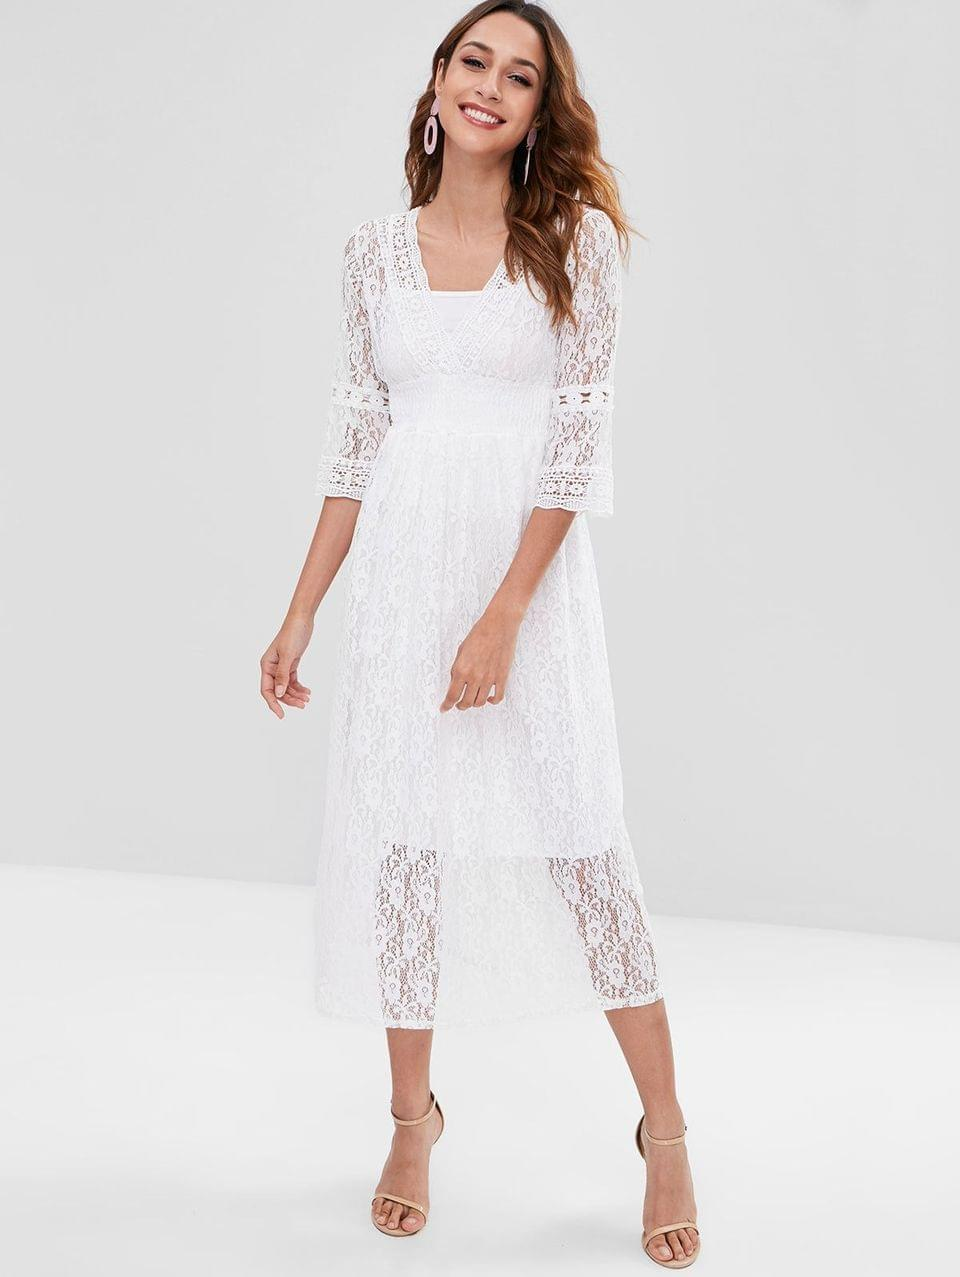 Women's Lace Surplice Dress With Cami Top - White M